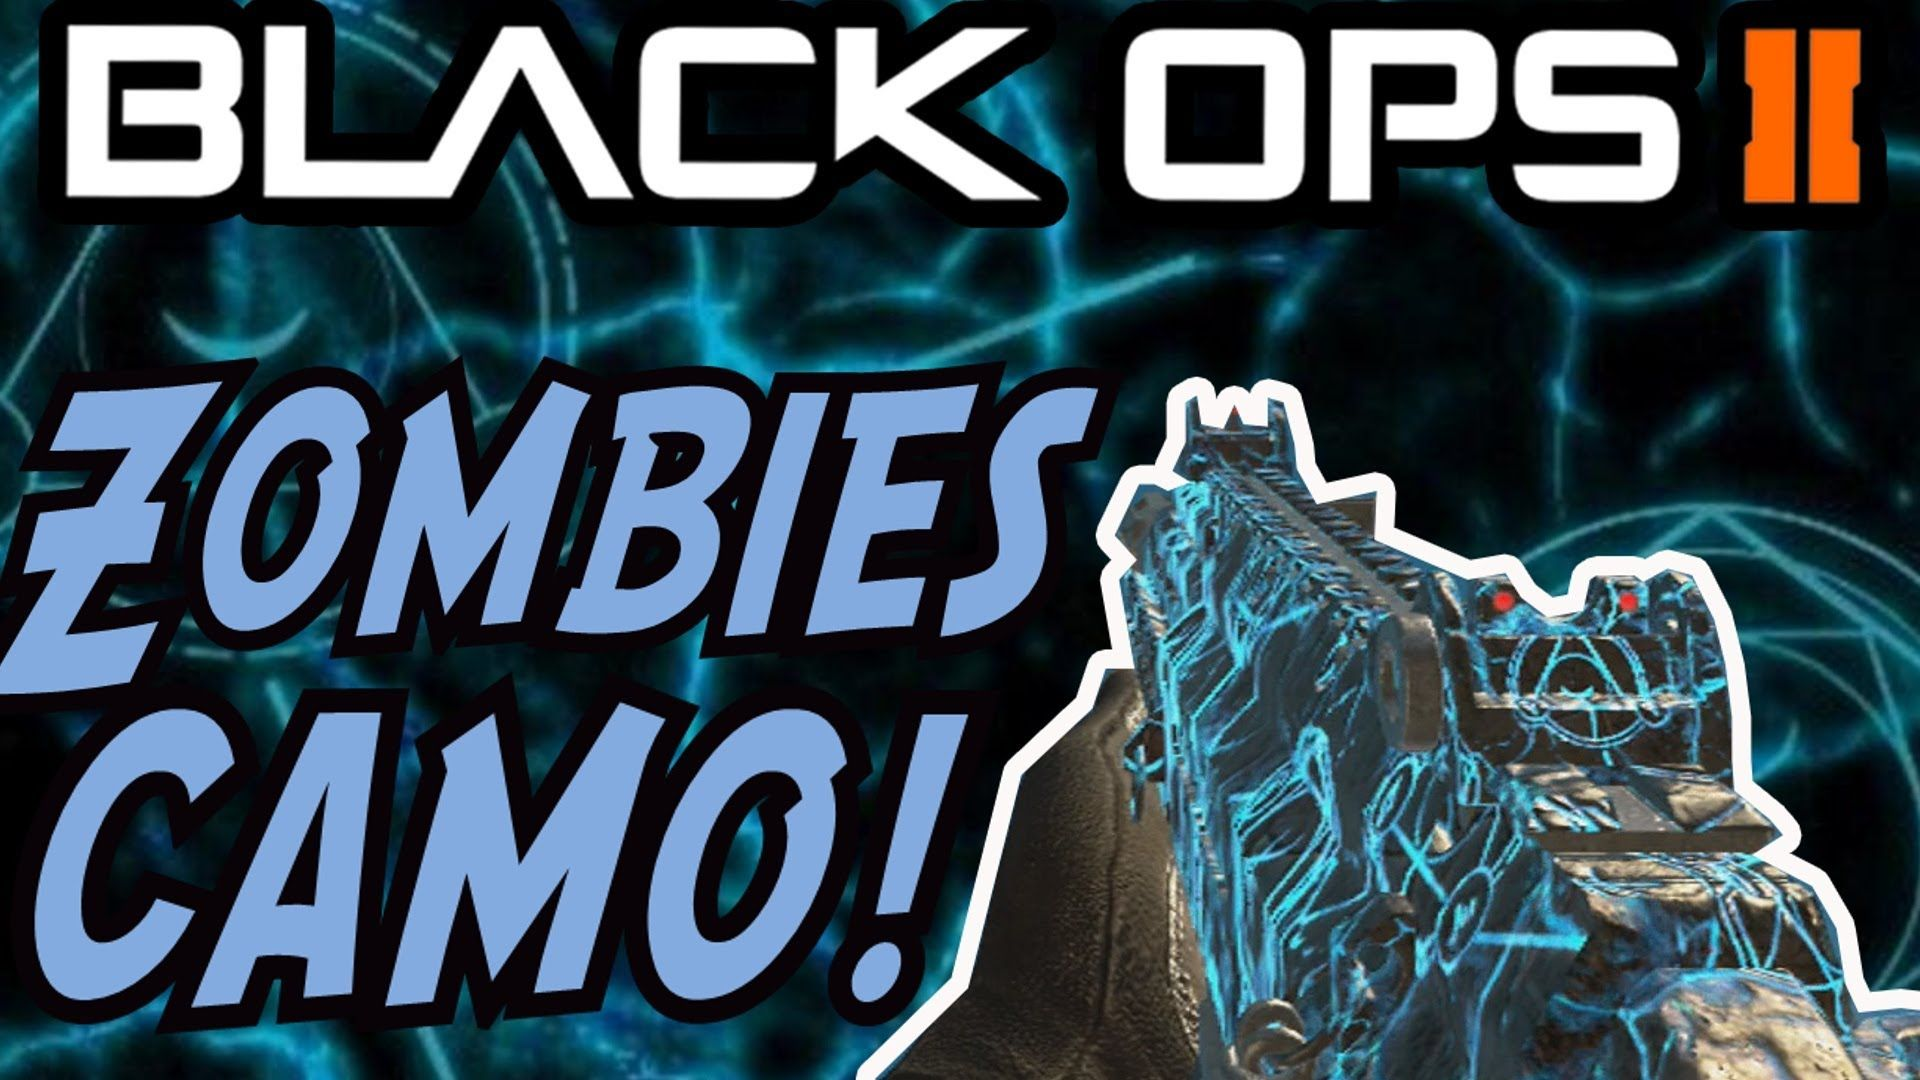 New Black Ops 2 Dlc Zombies Camo Gameplay Afterlife